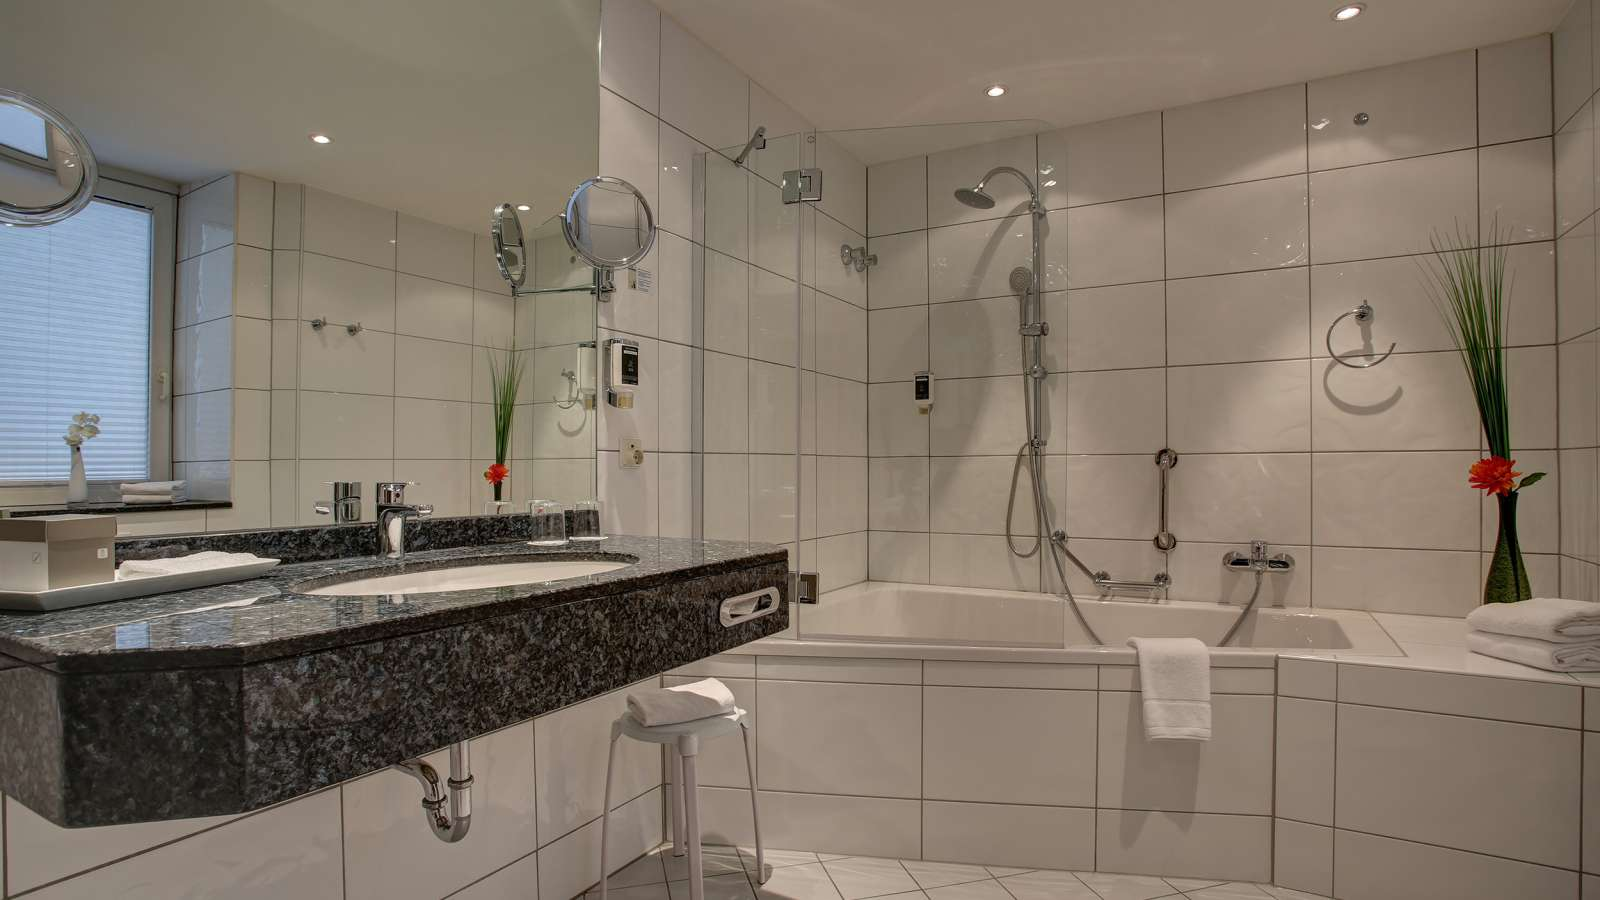 Spacious and modern bathroom in the Centro Hotel Uebachs in Düsseldorf